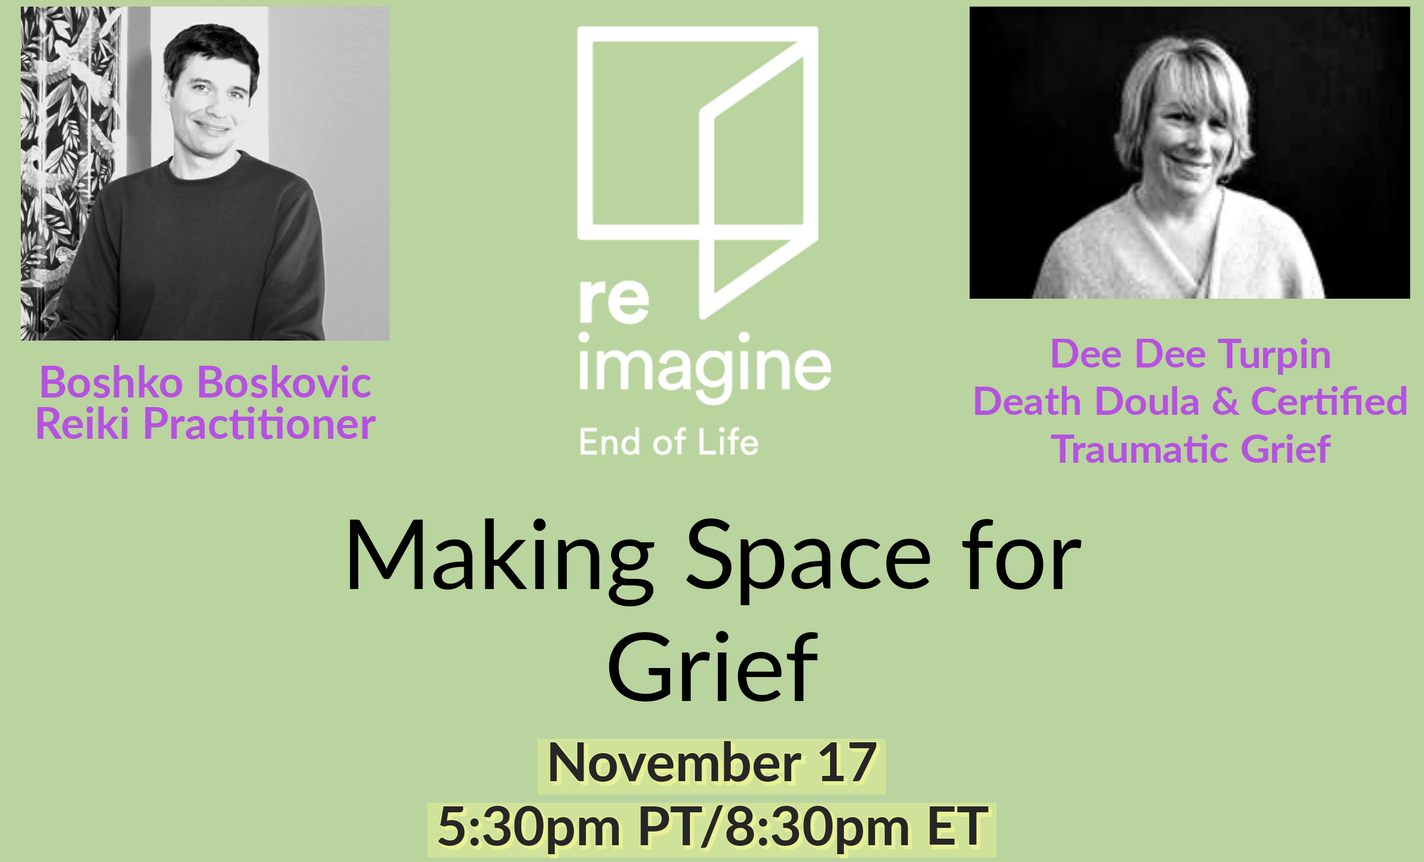 Making Space for Grief: Sorrow, Growth, Action and HOPE